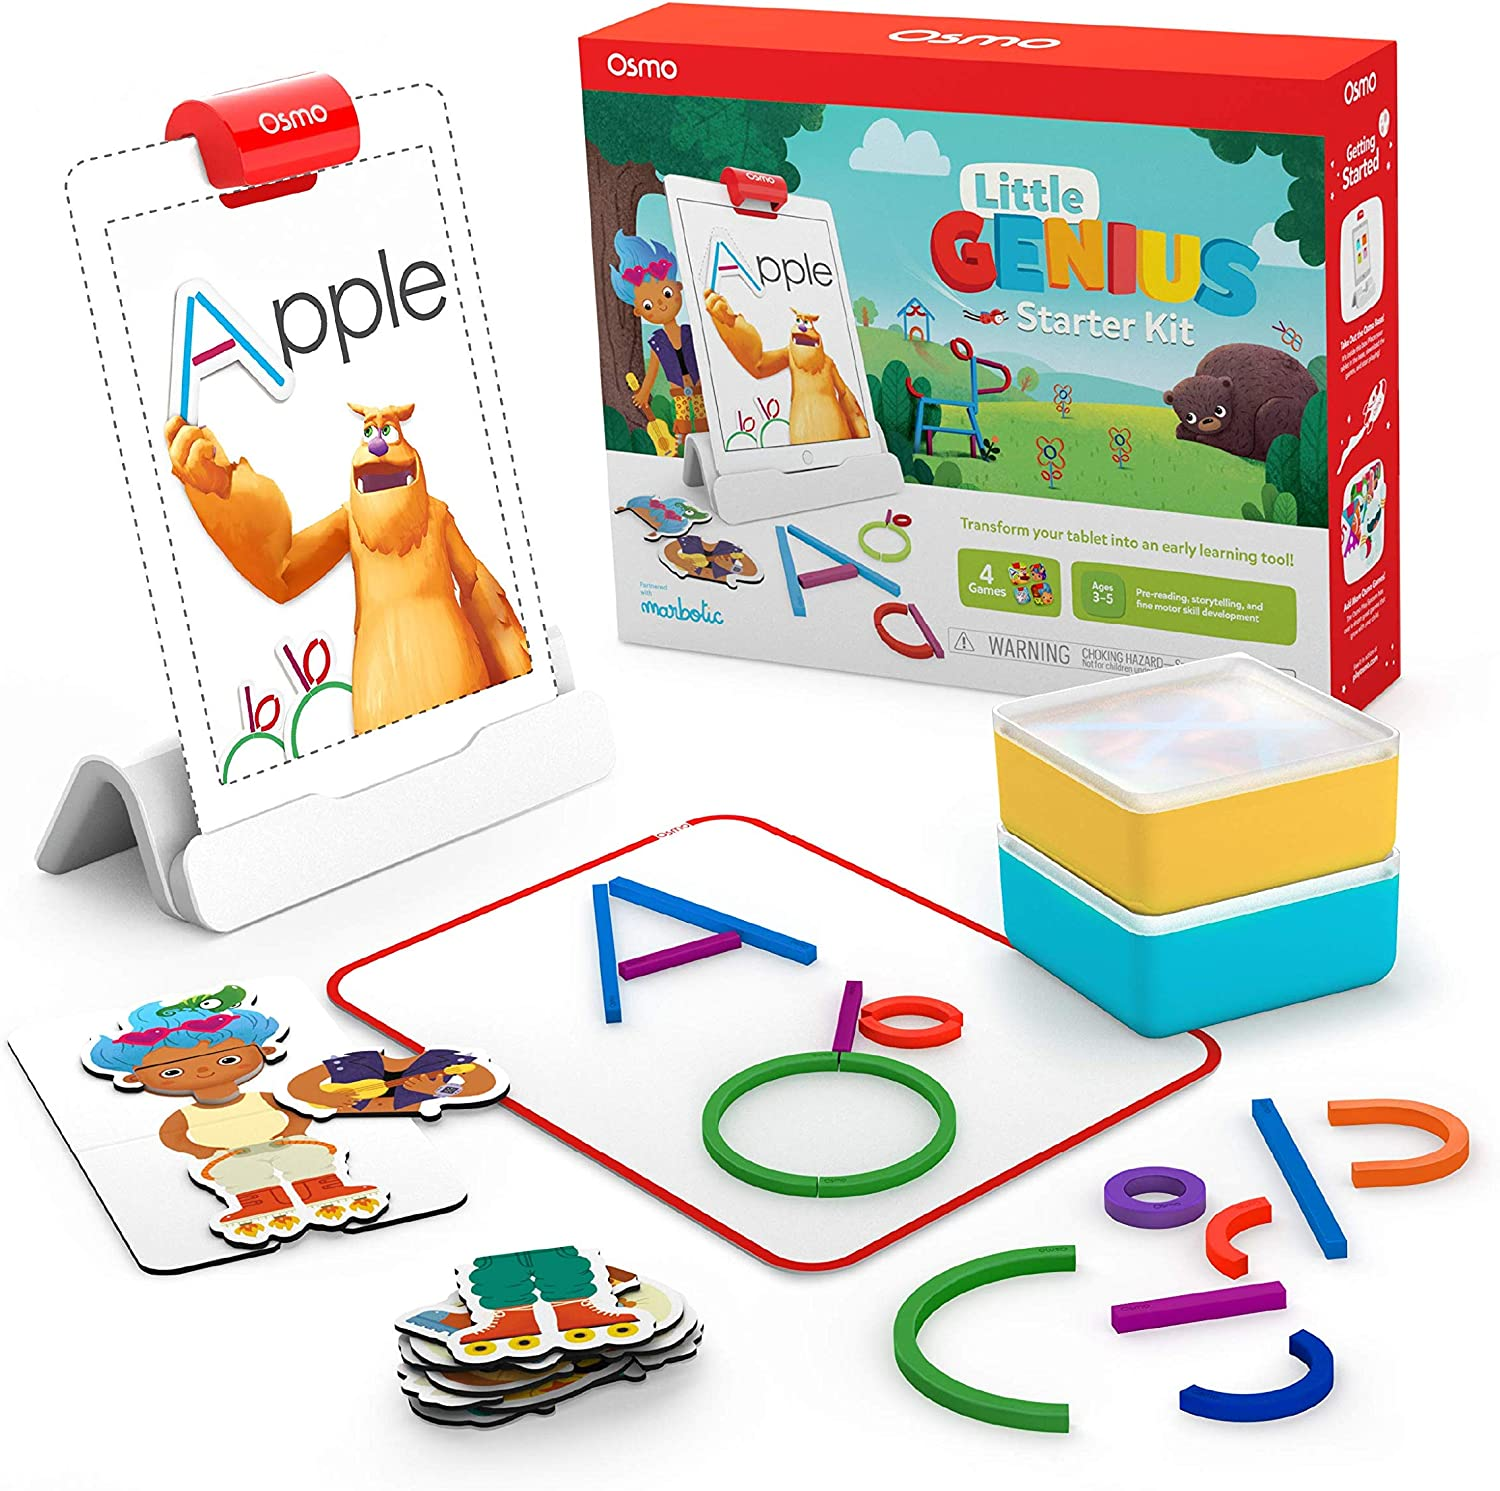 Osmo Kit For Ipad